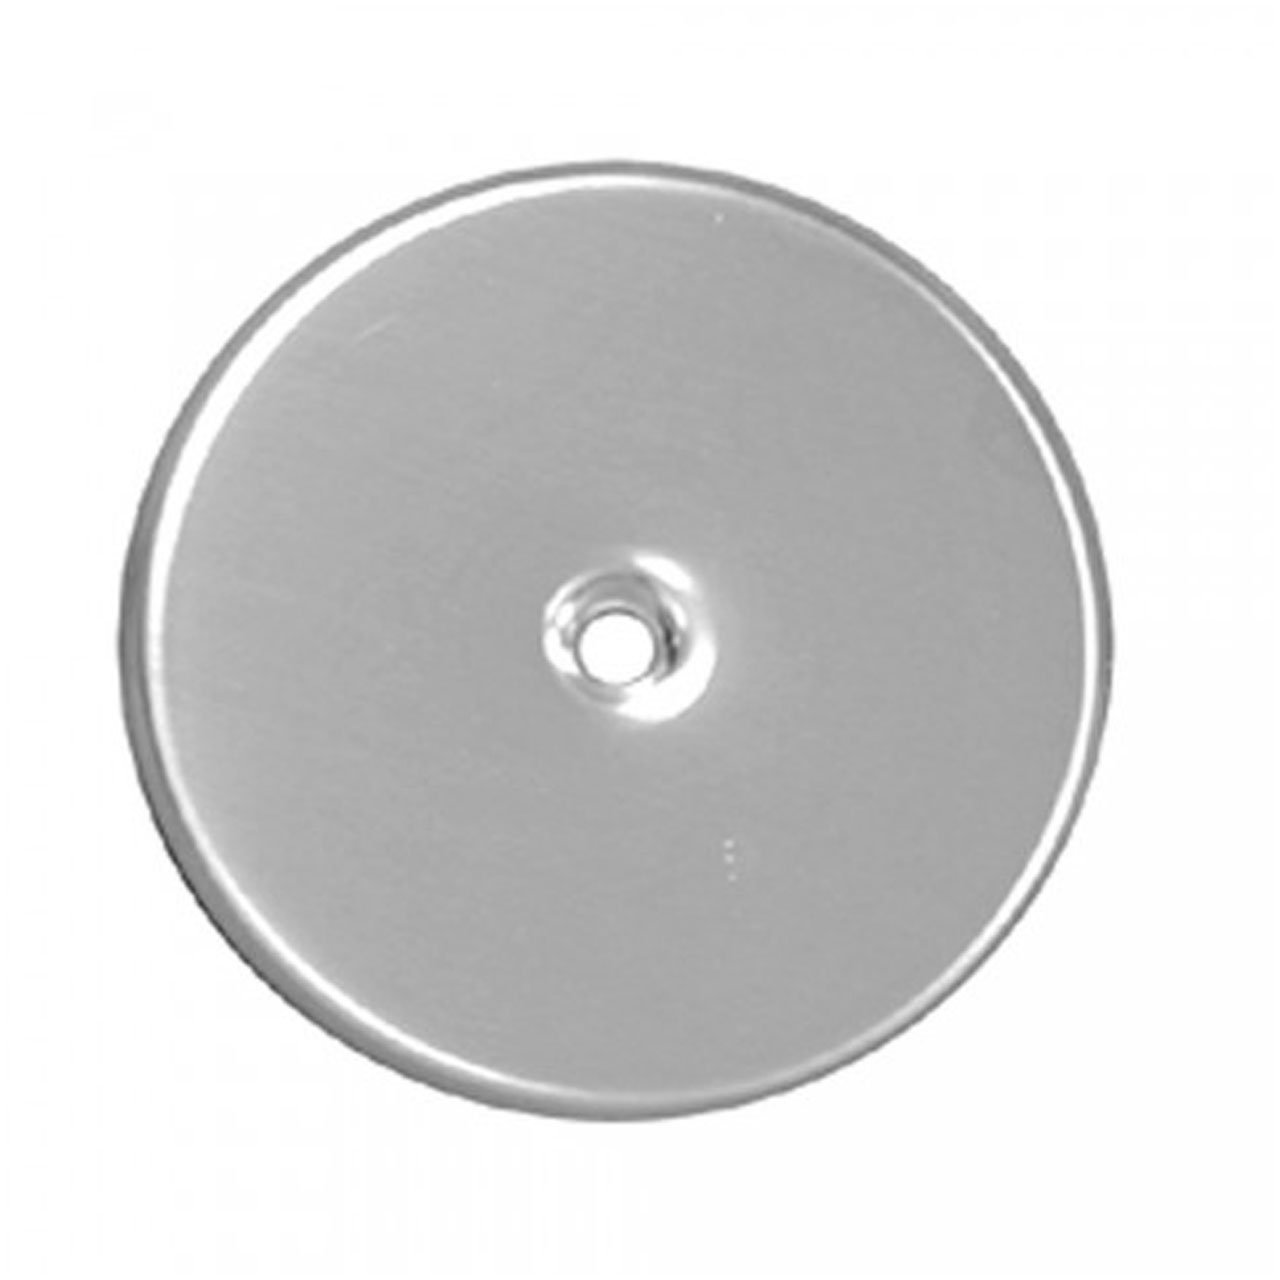 Jones Stephens Corporation C90600 6'' Cleanout/Extension Cover, Small, Stainless steel